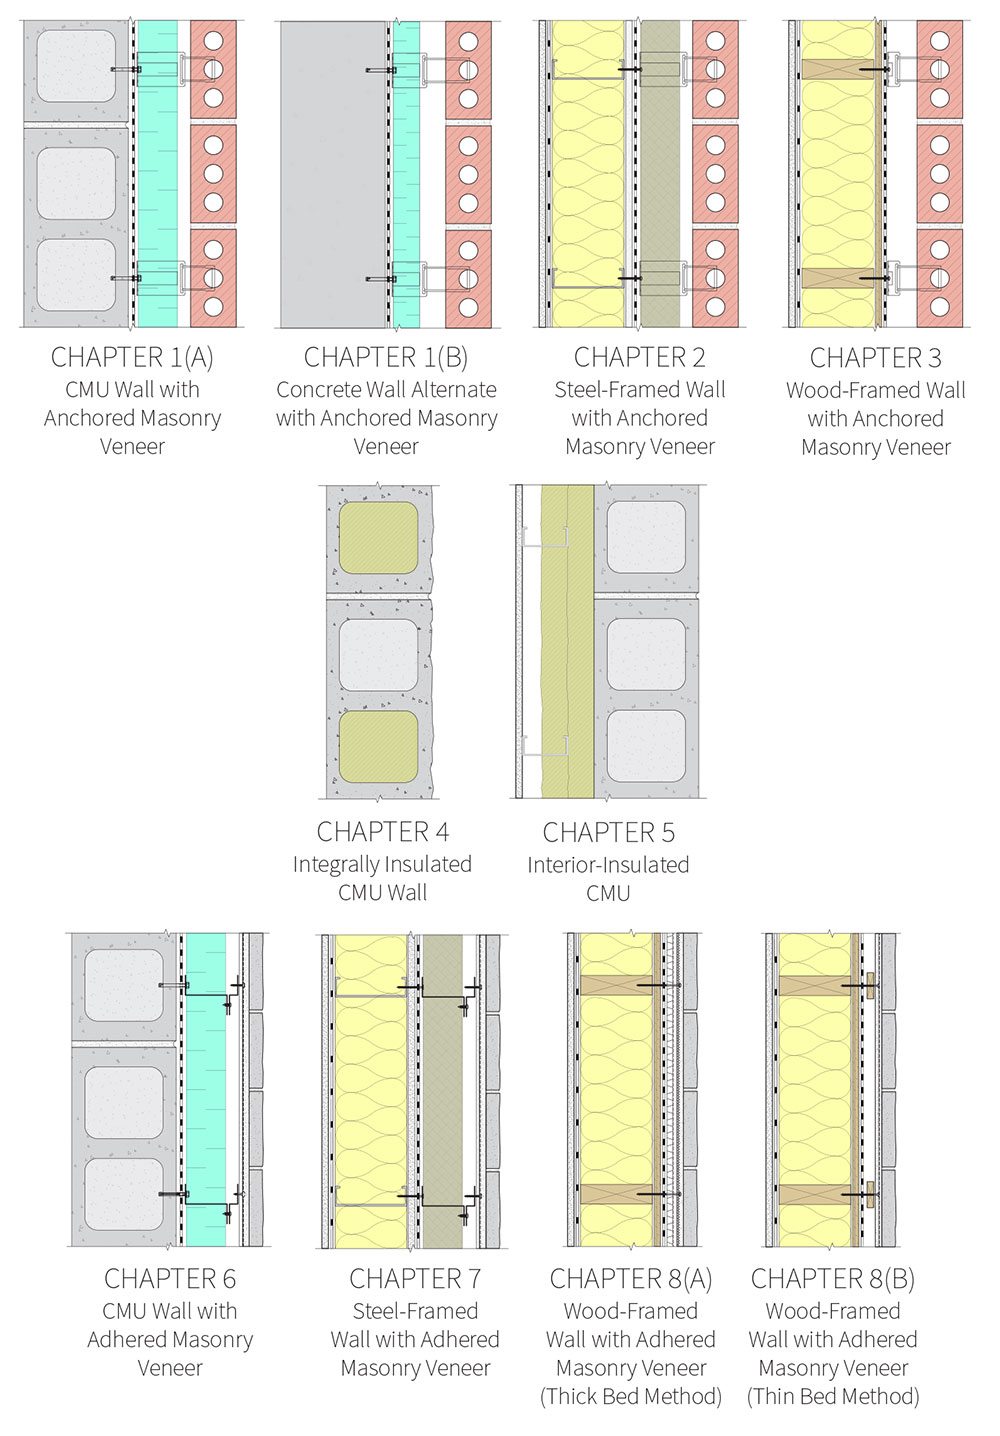 Fig. i-3 Chapters 1 through 8 assembly summary. Assemblies are depicted in plan view with interior located at left and exterior located at right.